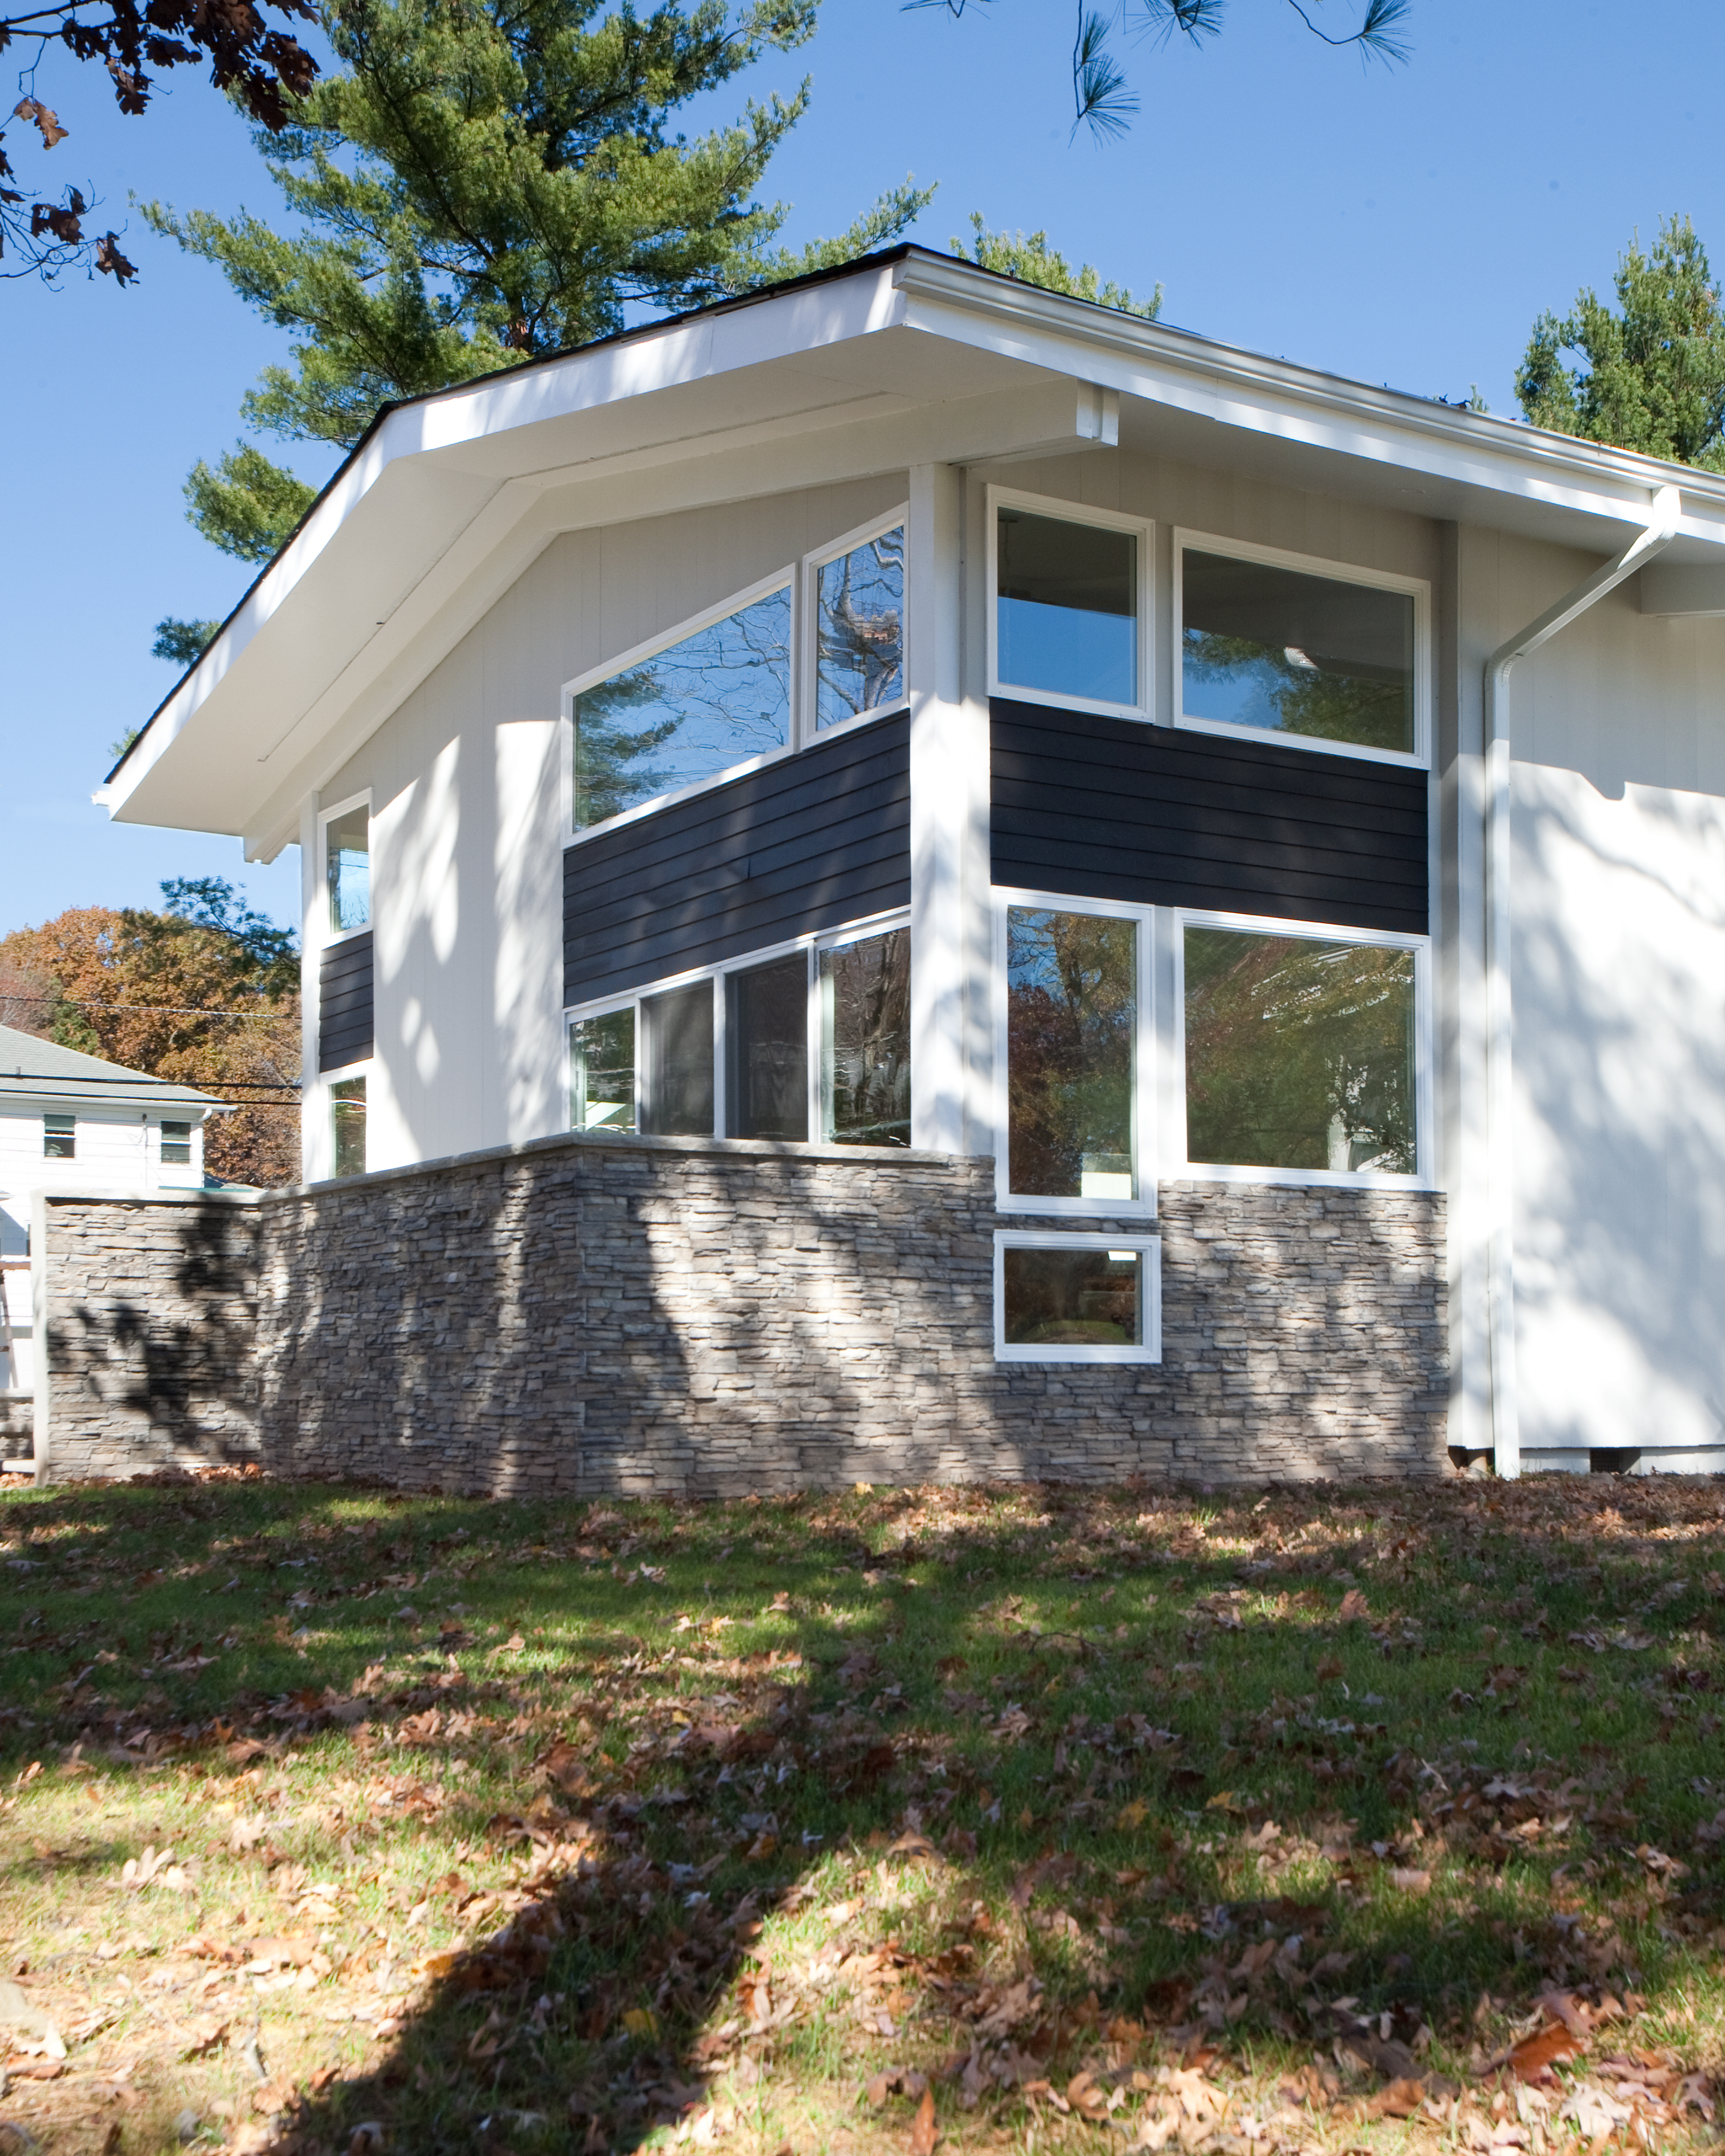 Modern residential architecture NJ. The existing porch was enclosed and incorporated into the living area